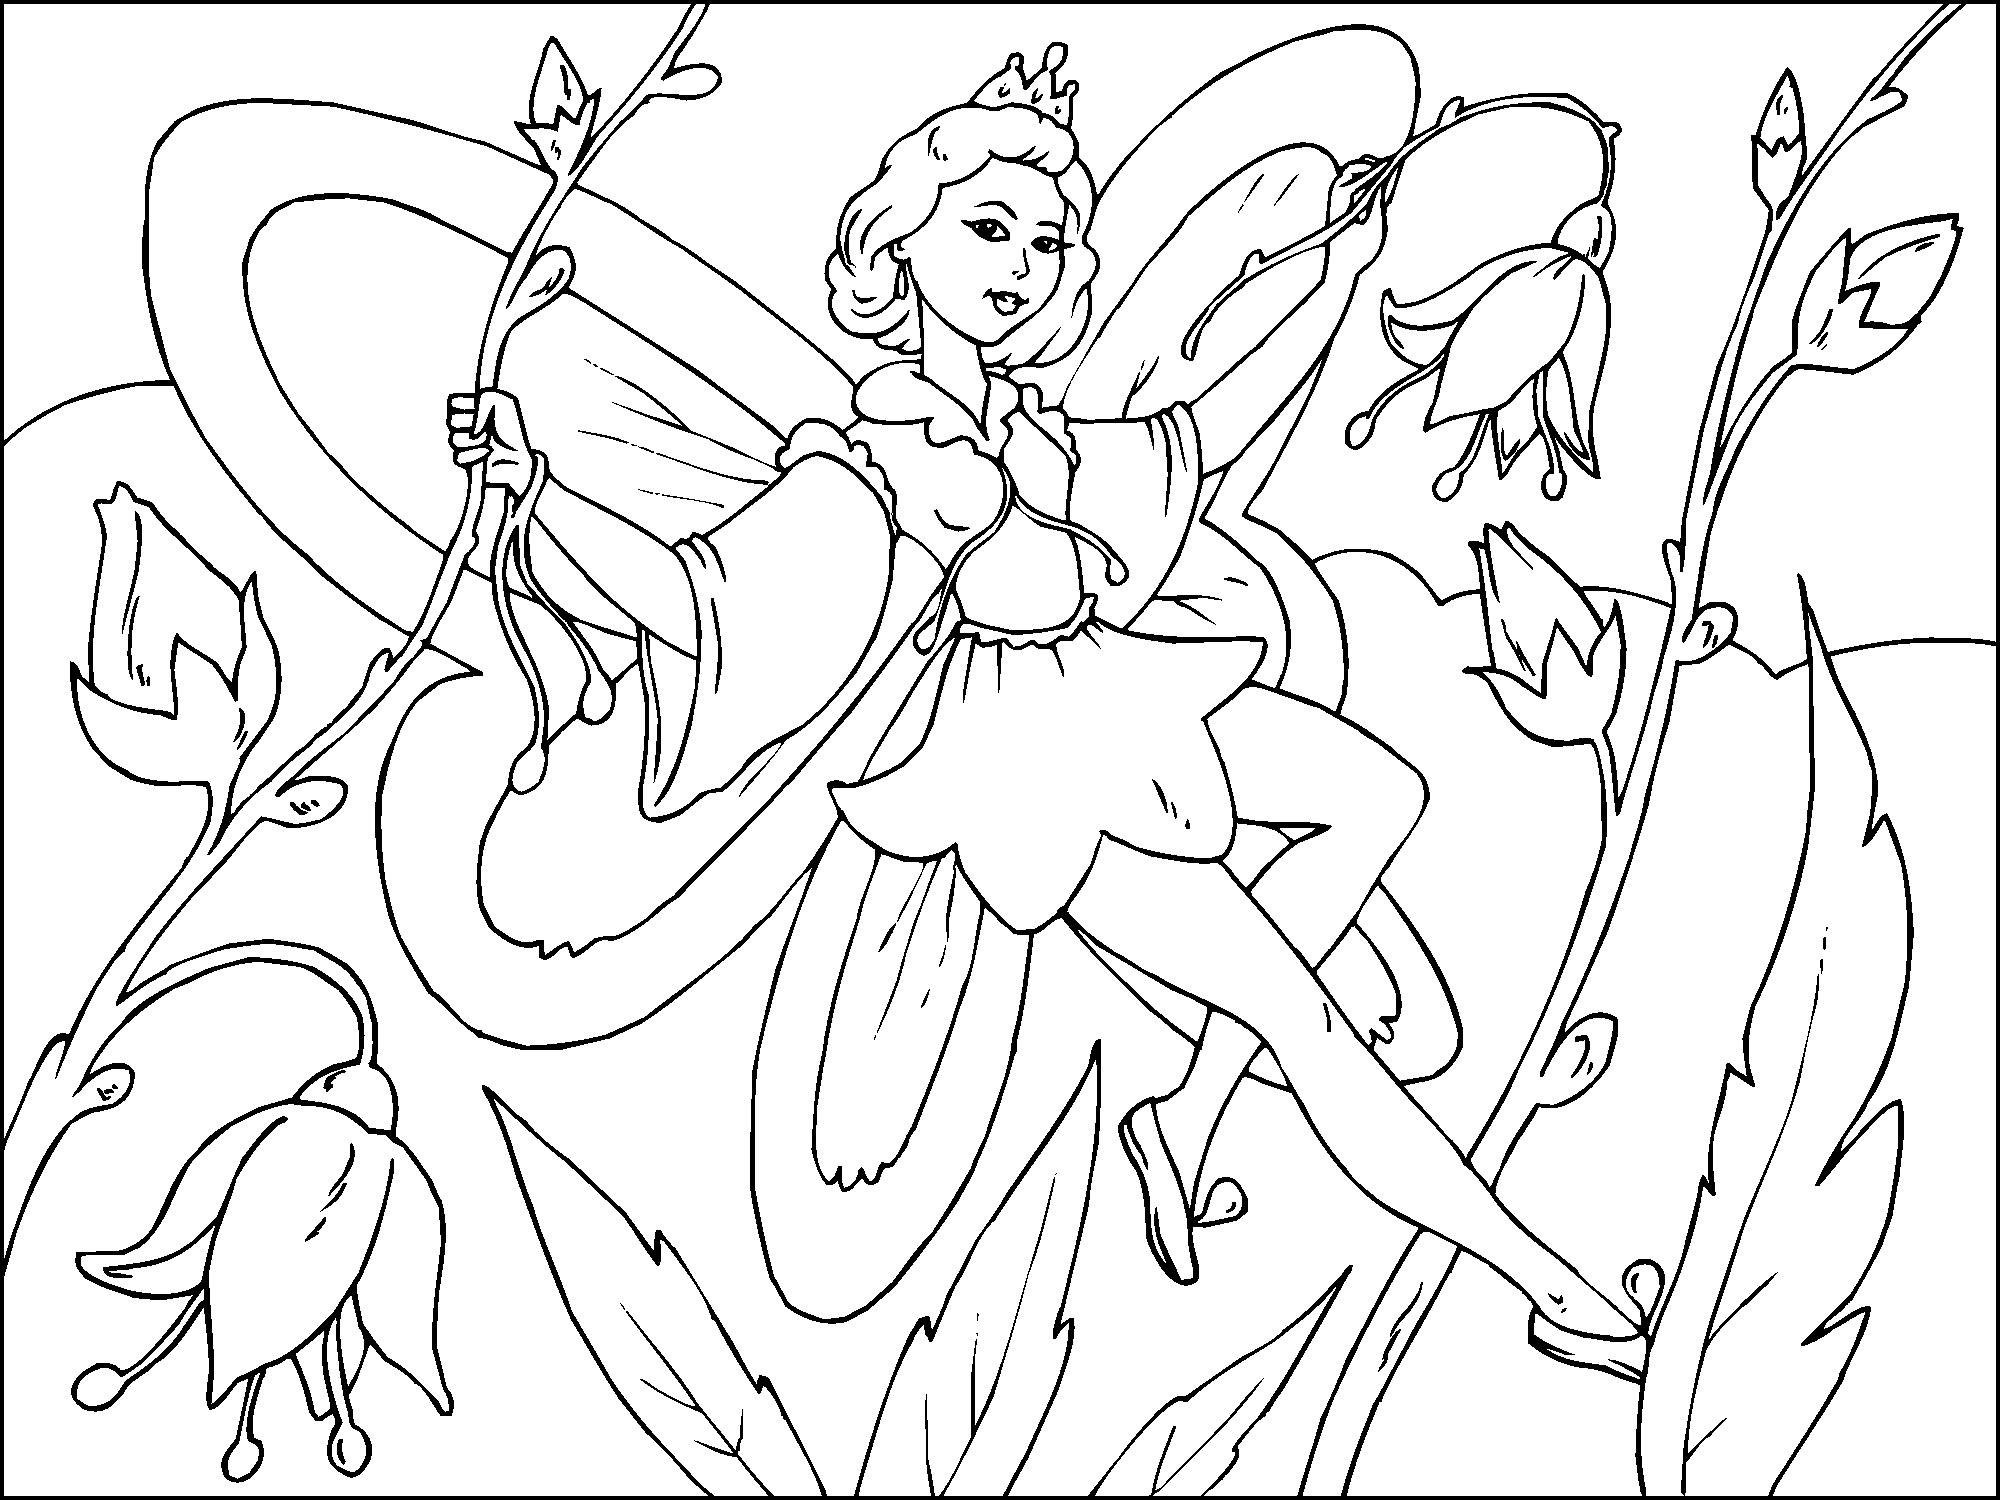 Coloring page flower fairy - img 22817.